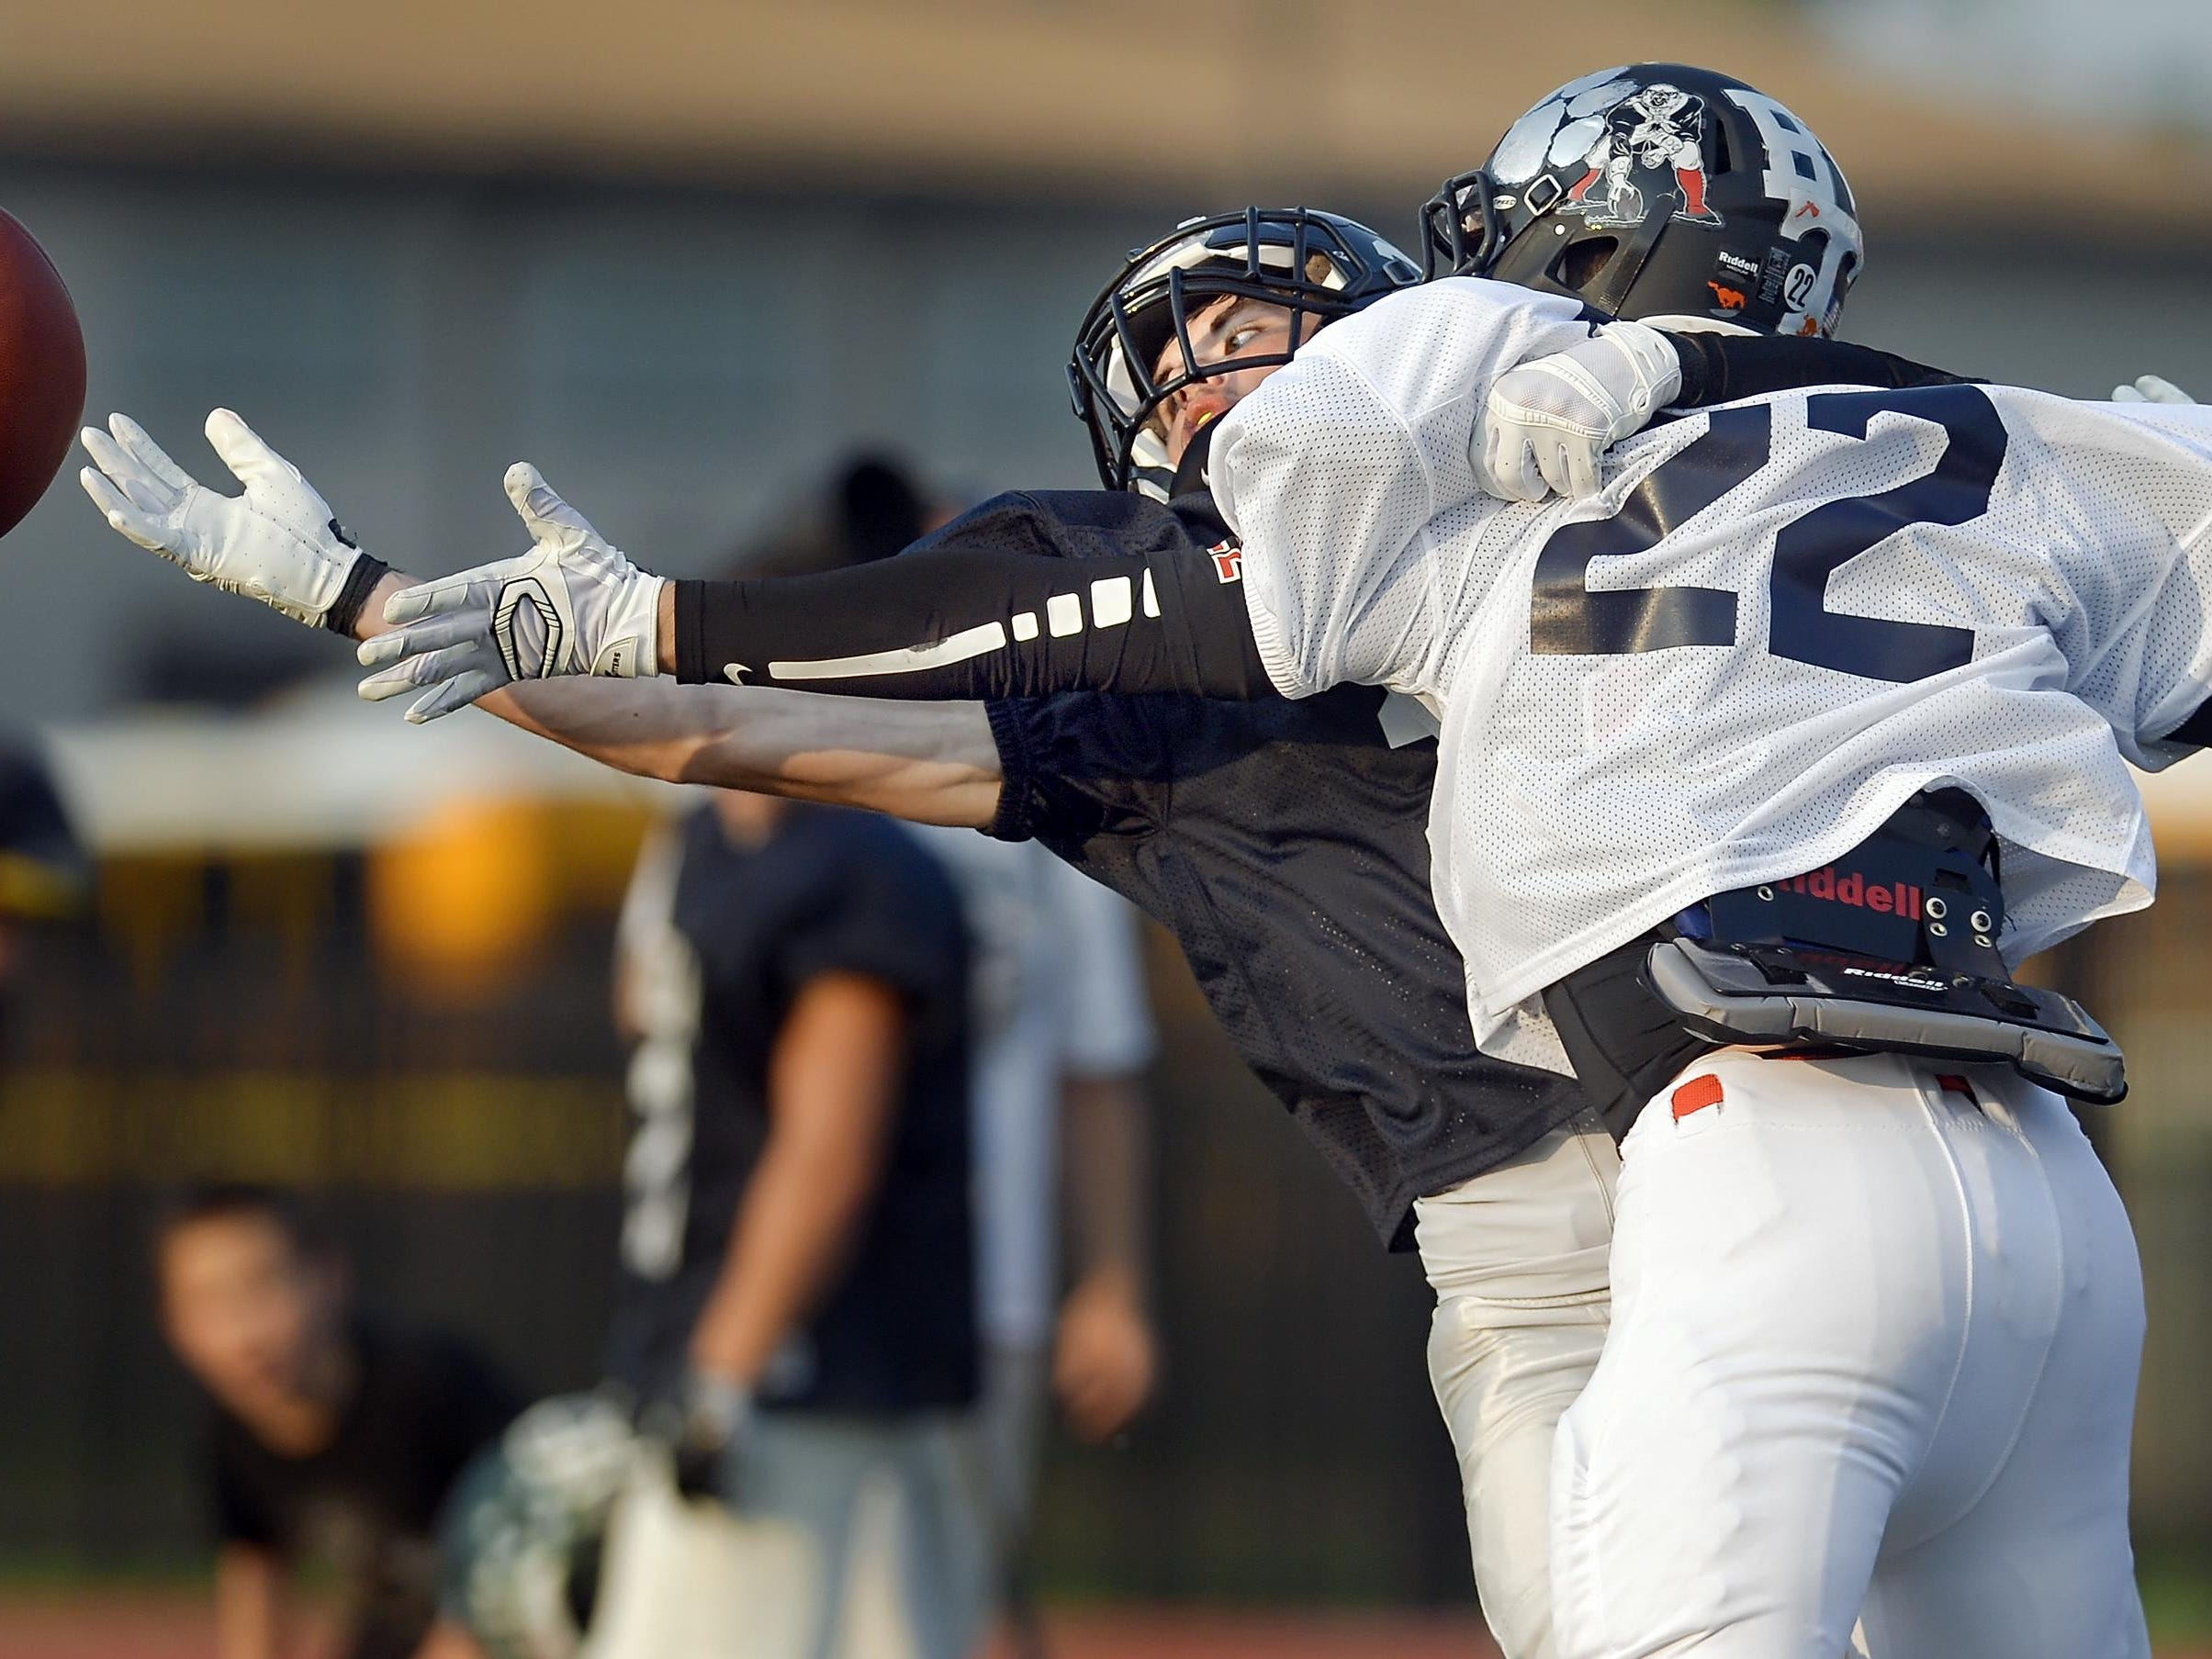 LeRoy's Ryan McQuillen, left, reaches for a tipped pass while defended by Penfield's Brian McCandless during the 33rd Annual Eddie Meath All-Star Game played at Eastridge High School on Saturday, July 11, 2015.